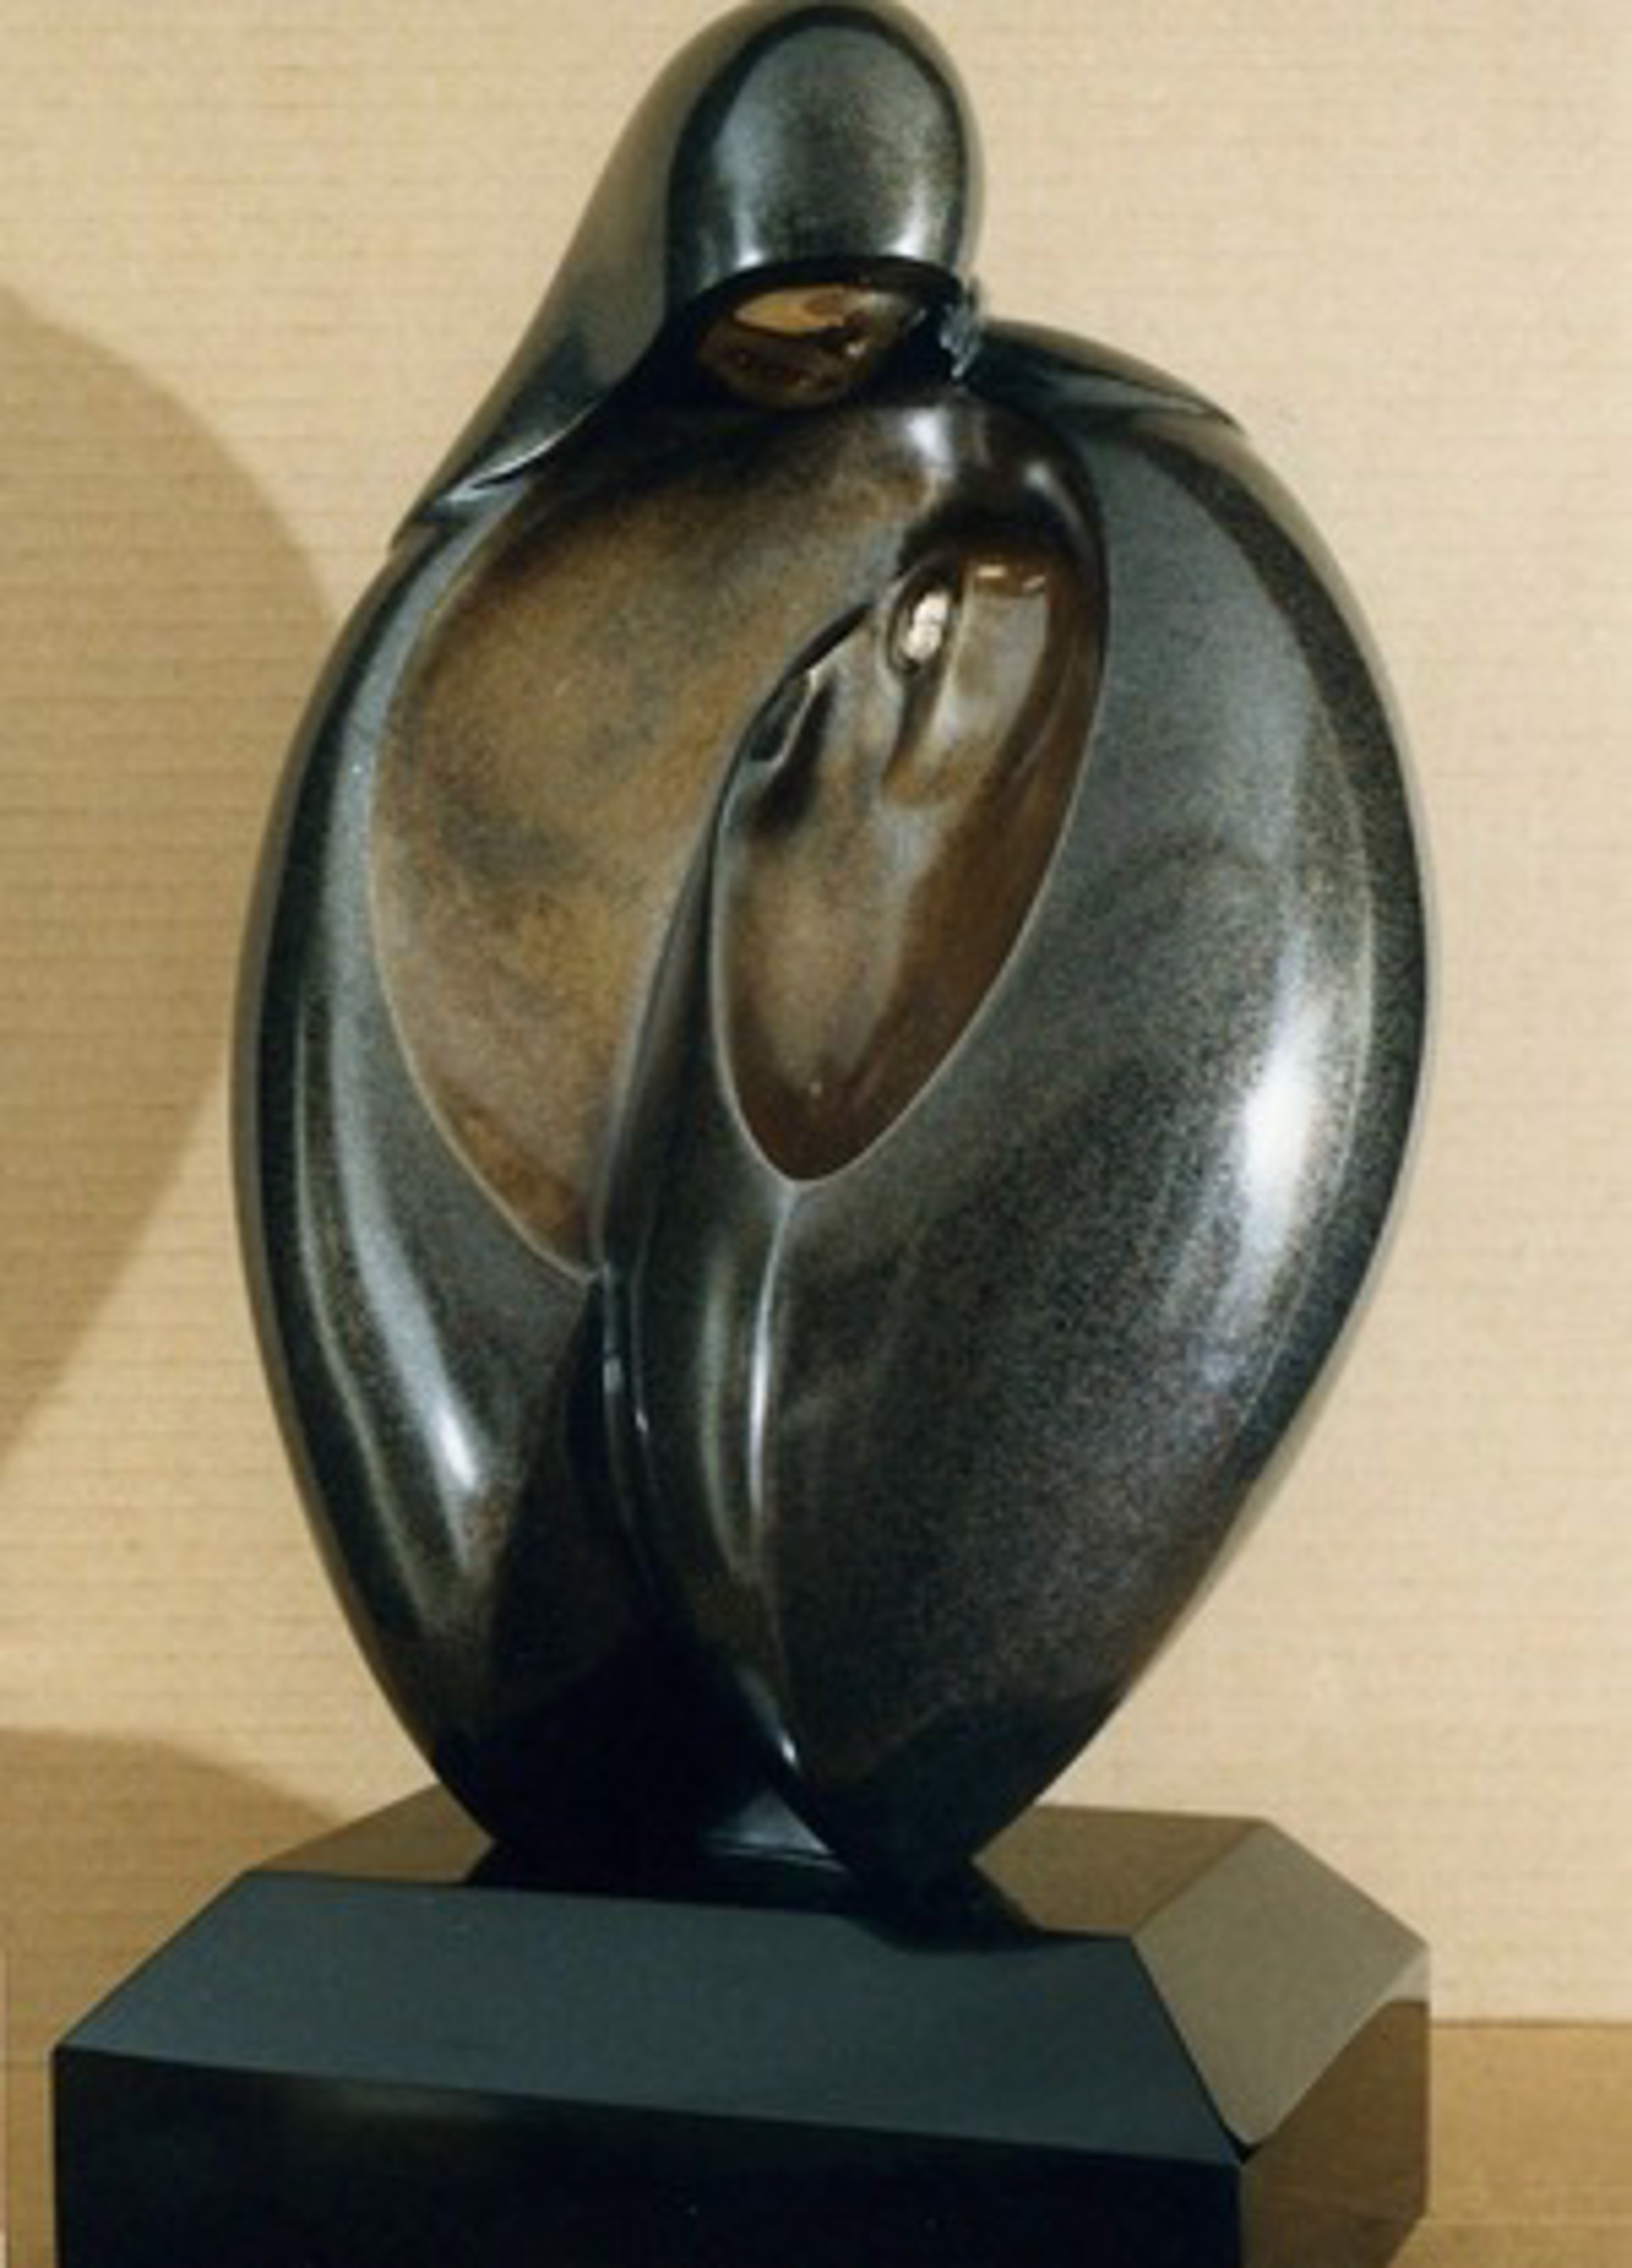 Mother and Child by D.E. McDermott